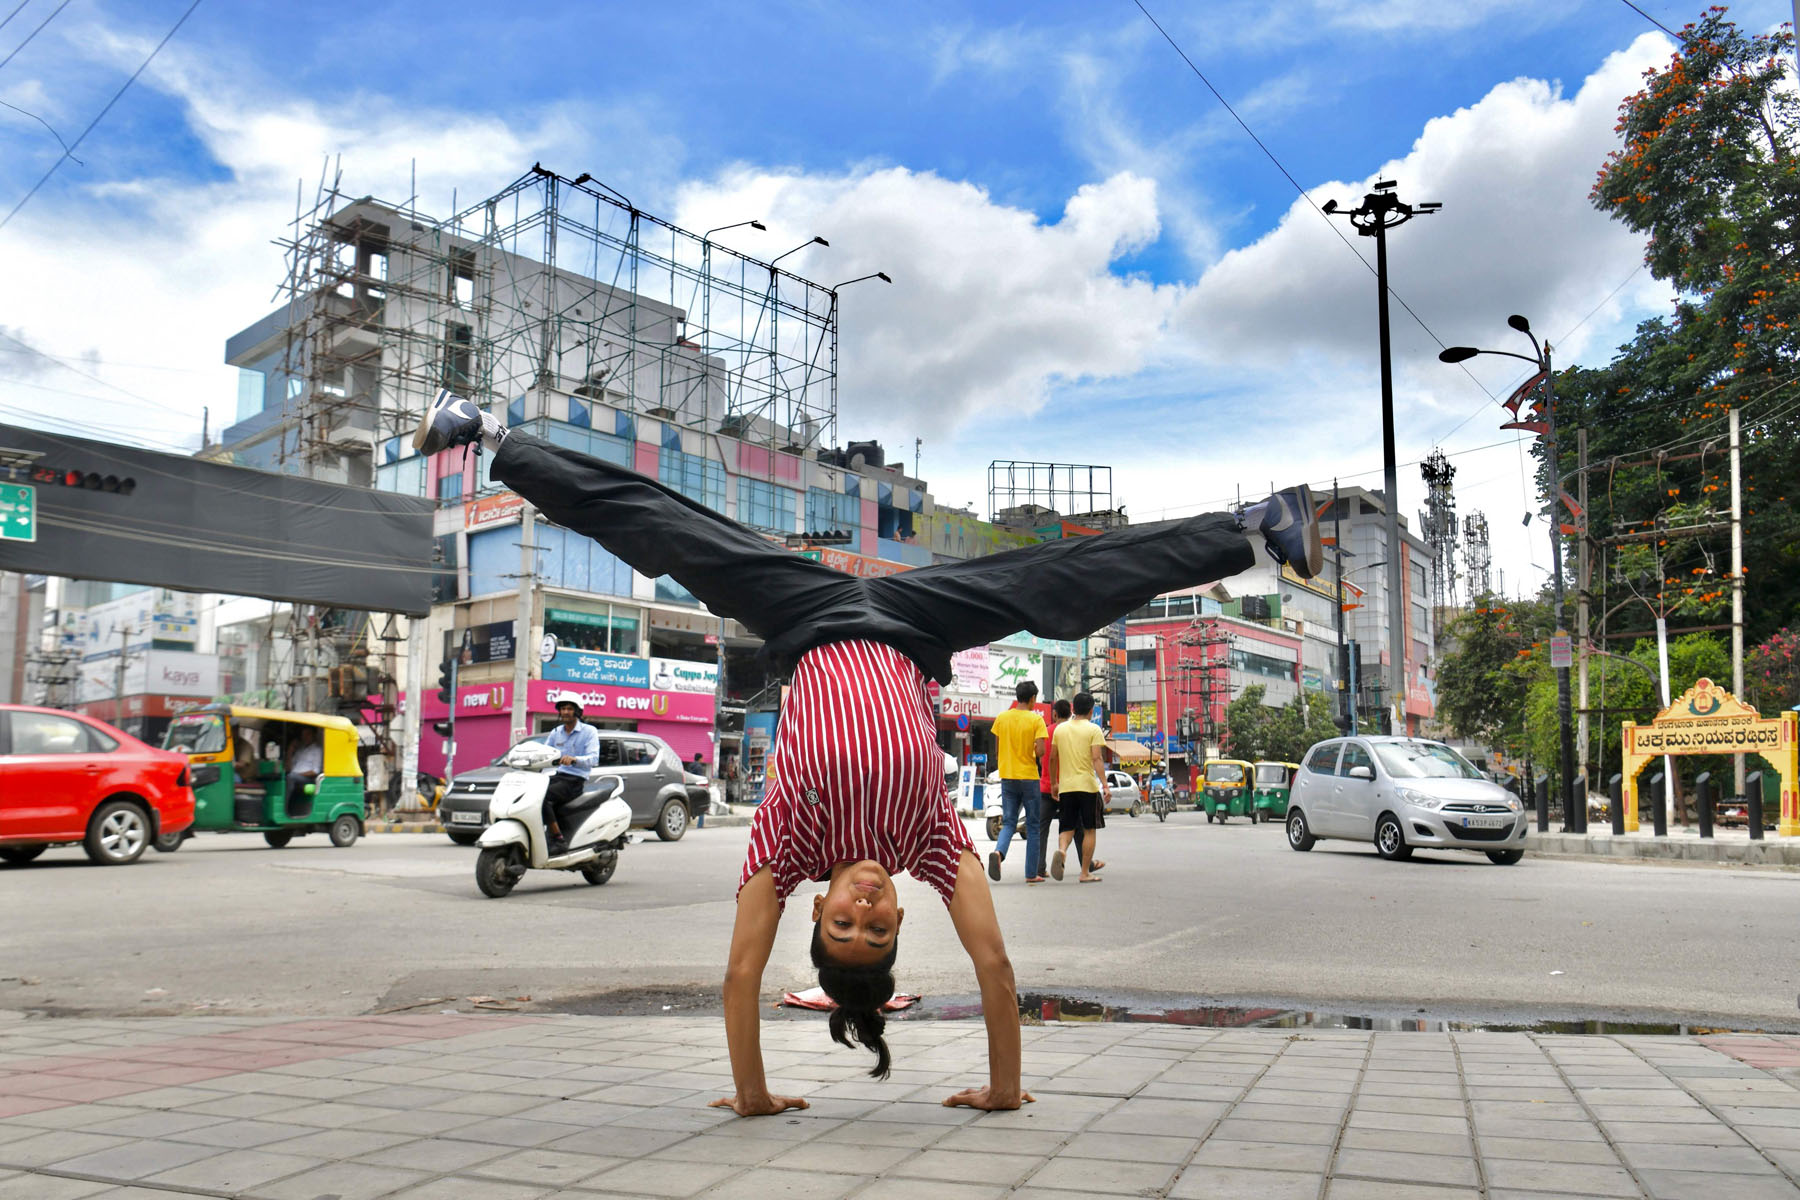 INDIA BREAK DANCING GENDER YOGA